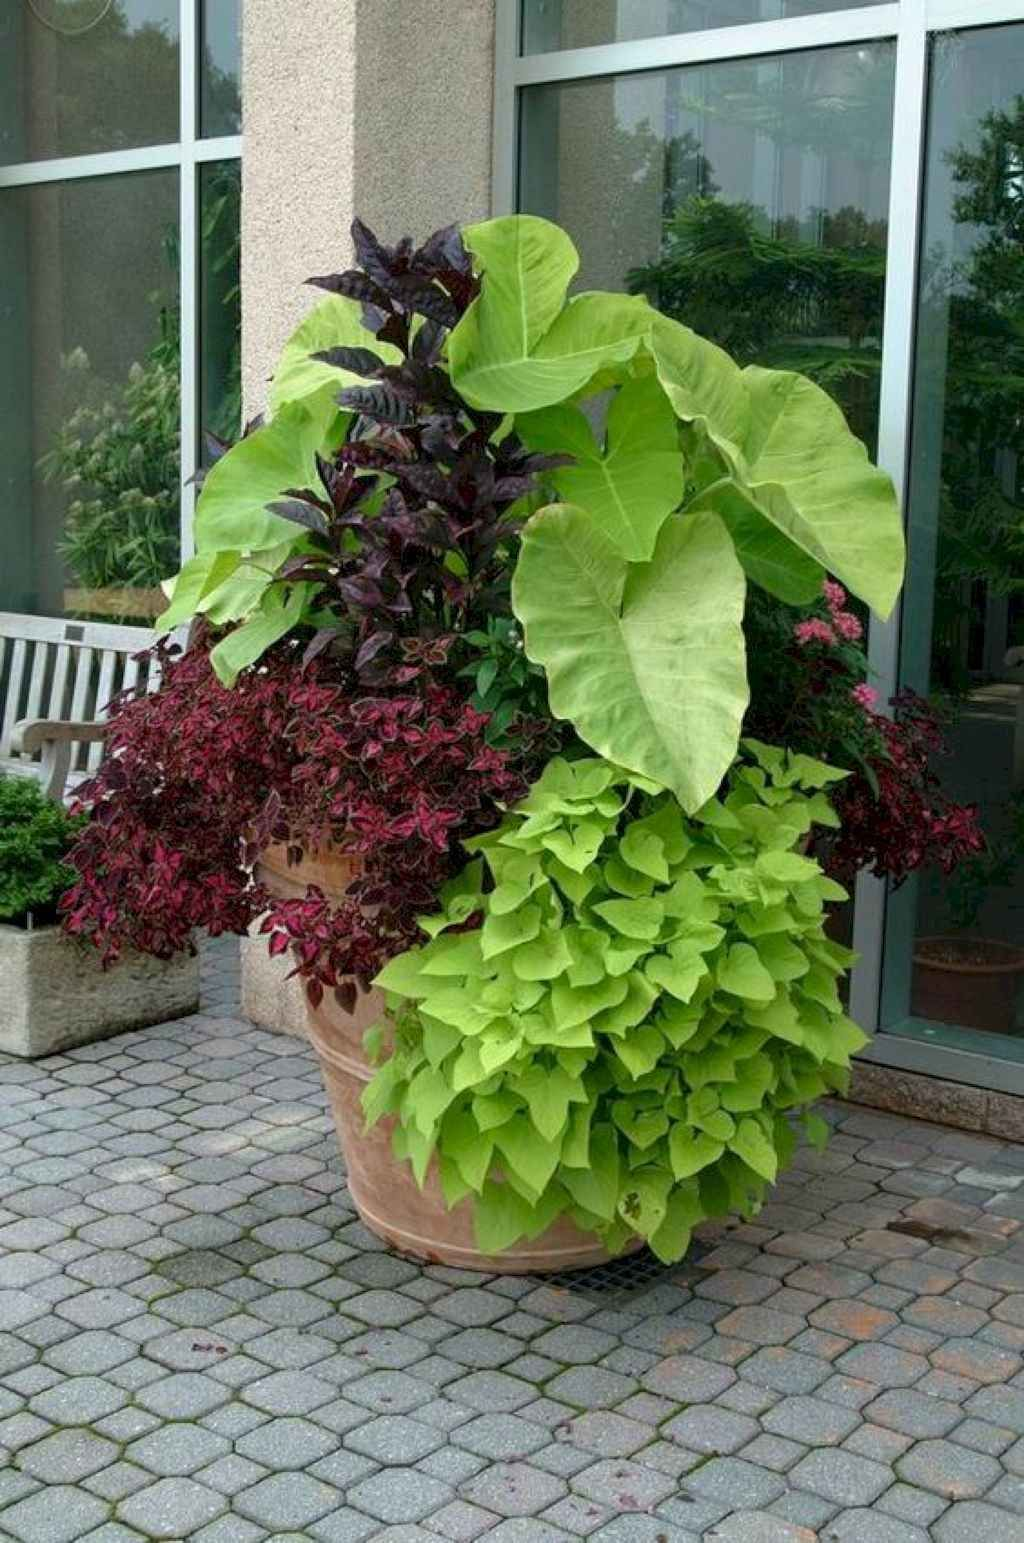 60 Stunning Container Garden Planting Design Ideas is part of Container gardening flowers, Balcony flowers, Garden, Plants, Container gardening, Container flowers - Do you have shady areas that could use a bit of color or interest  A porch that could use some curb appeal  A northfacing patio  Or even an area under a tree that has a hard time growing plants in… Continue Reading →